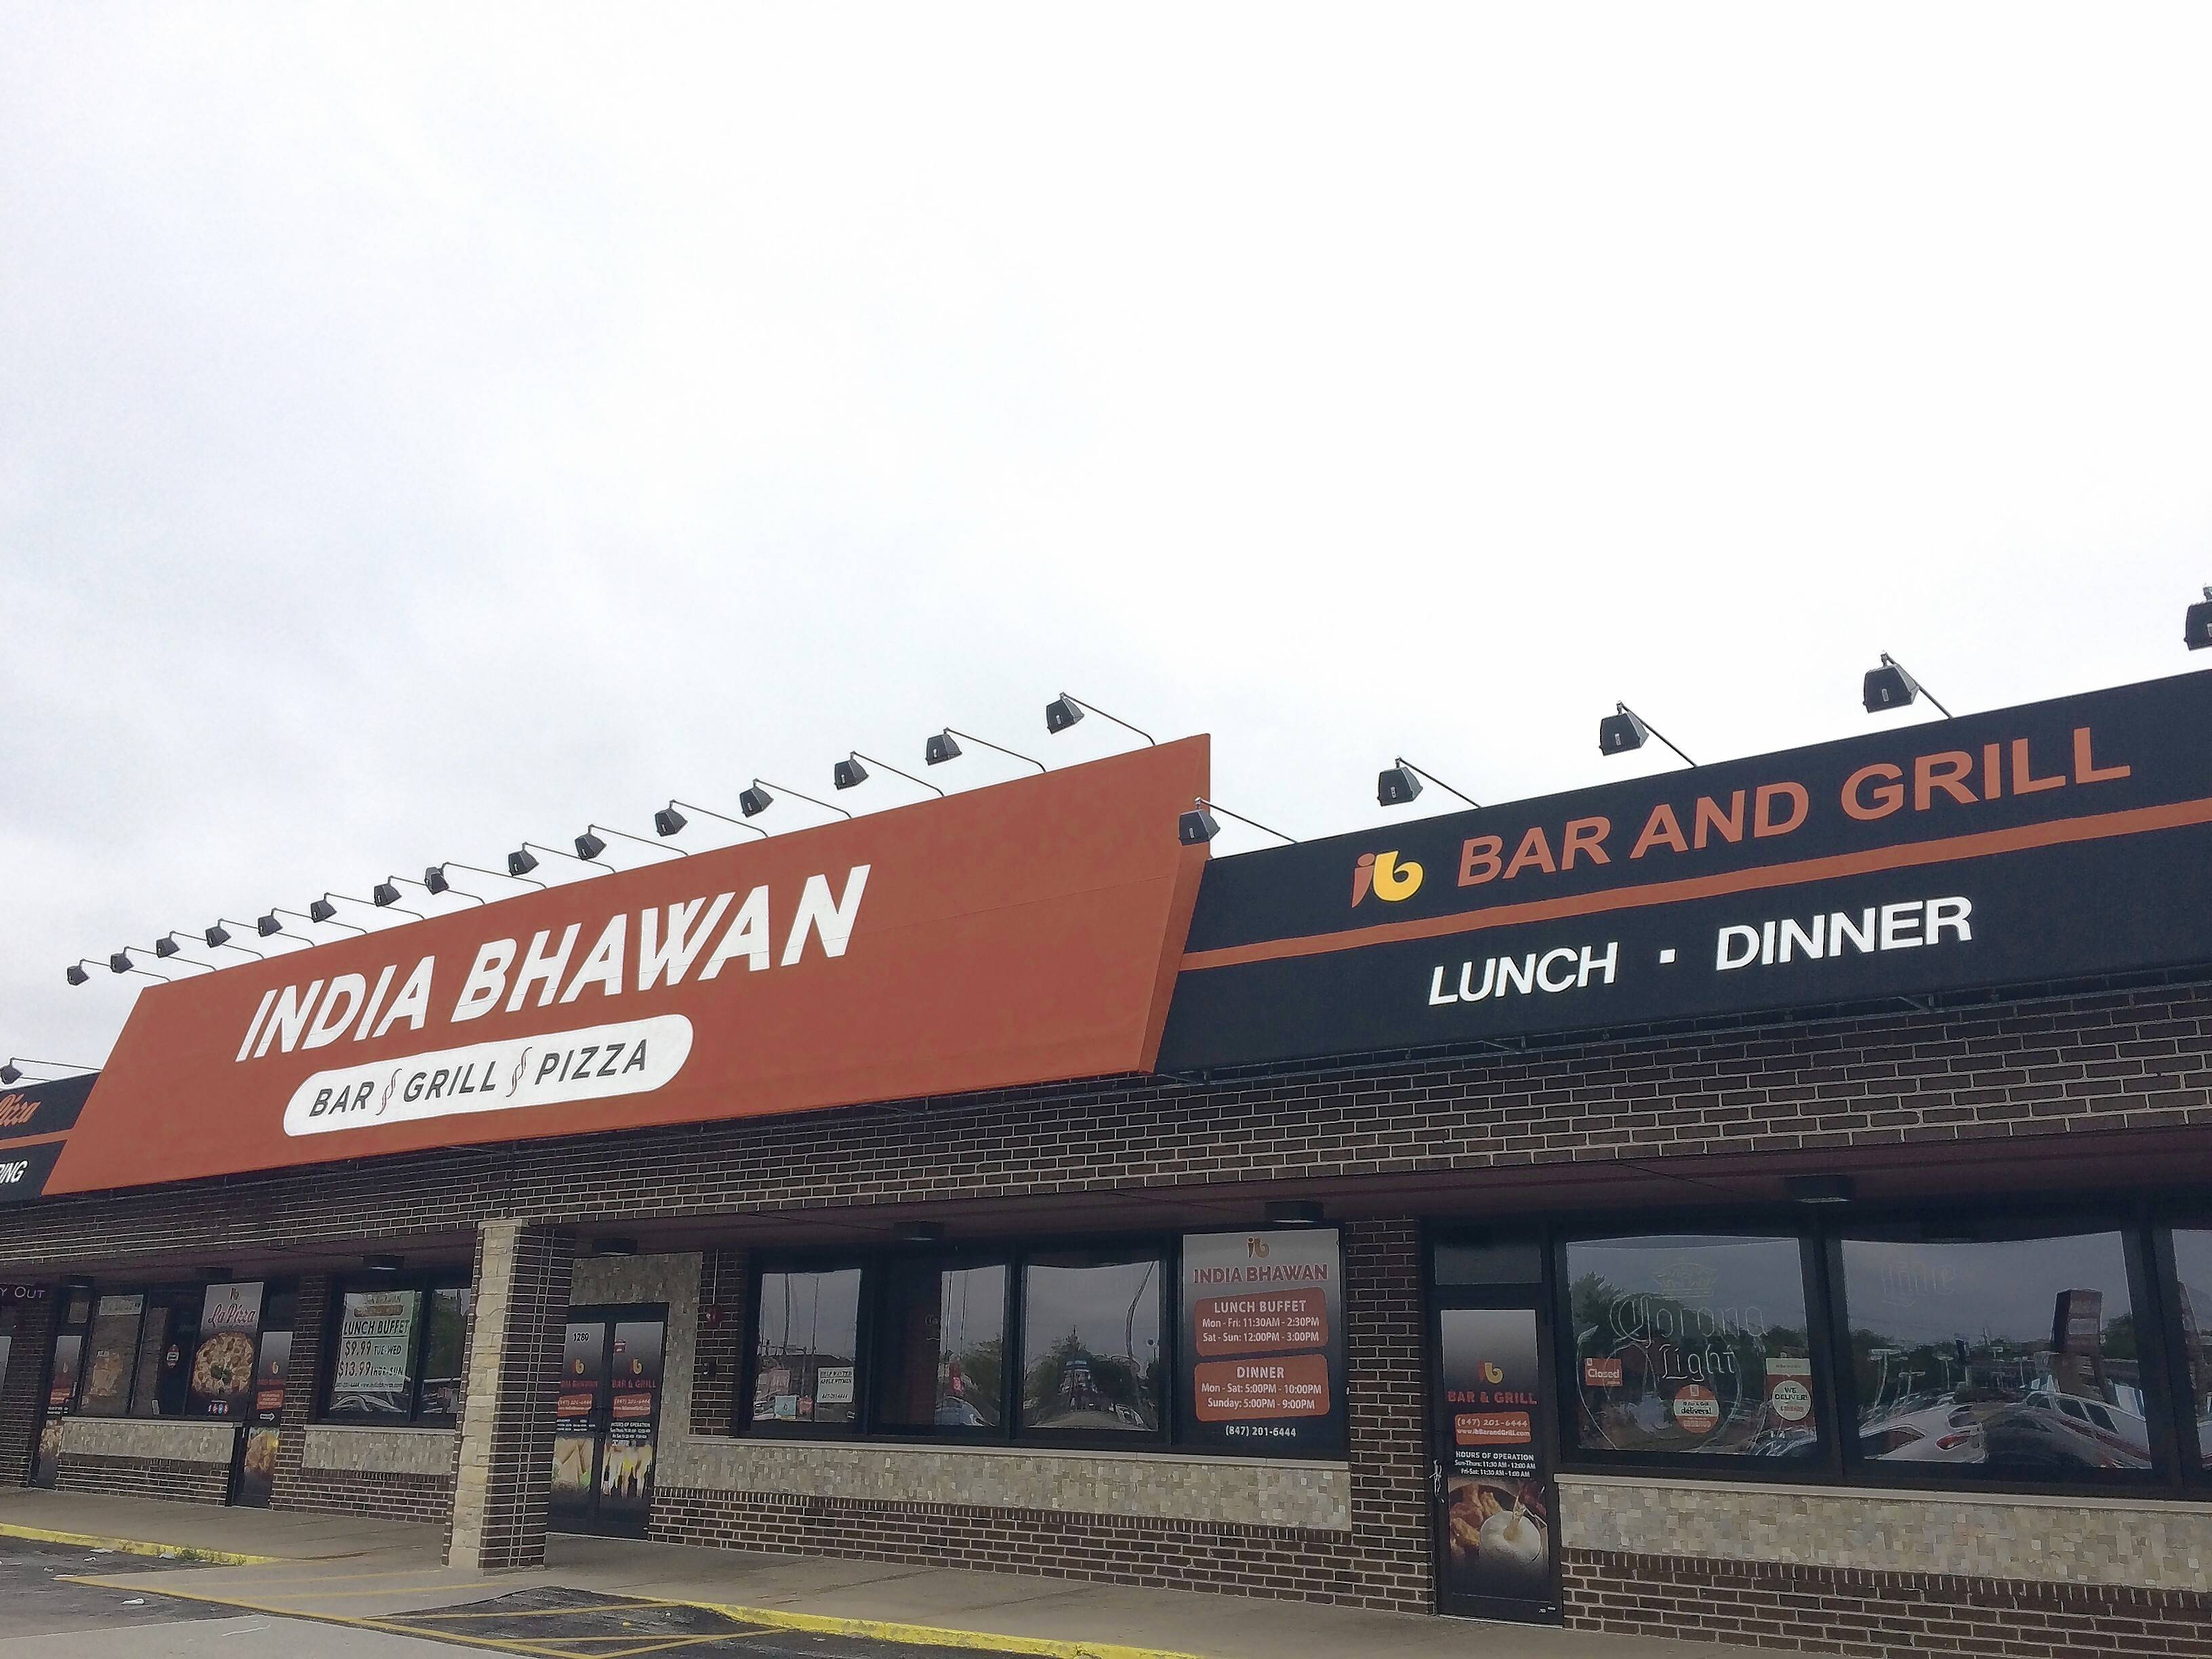 Indian Bhawan, a restaurant on Dundee Road in Palatine that was accused of not taking precautions to prevent illegal drug sales on the premises and allowing another eatery to operate in its building without a license, will voluntarily close under an agreement with the village.